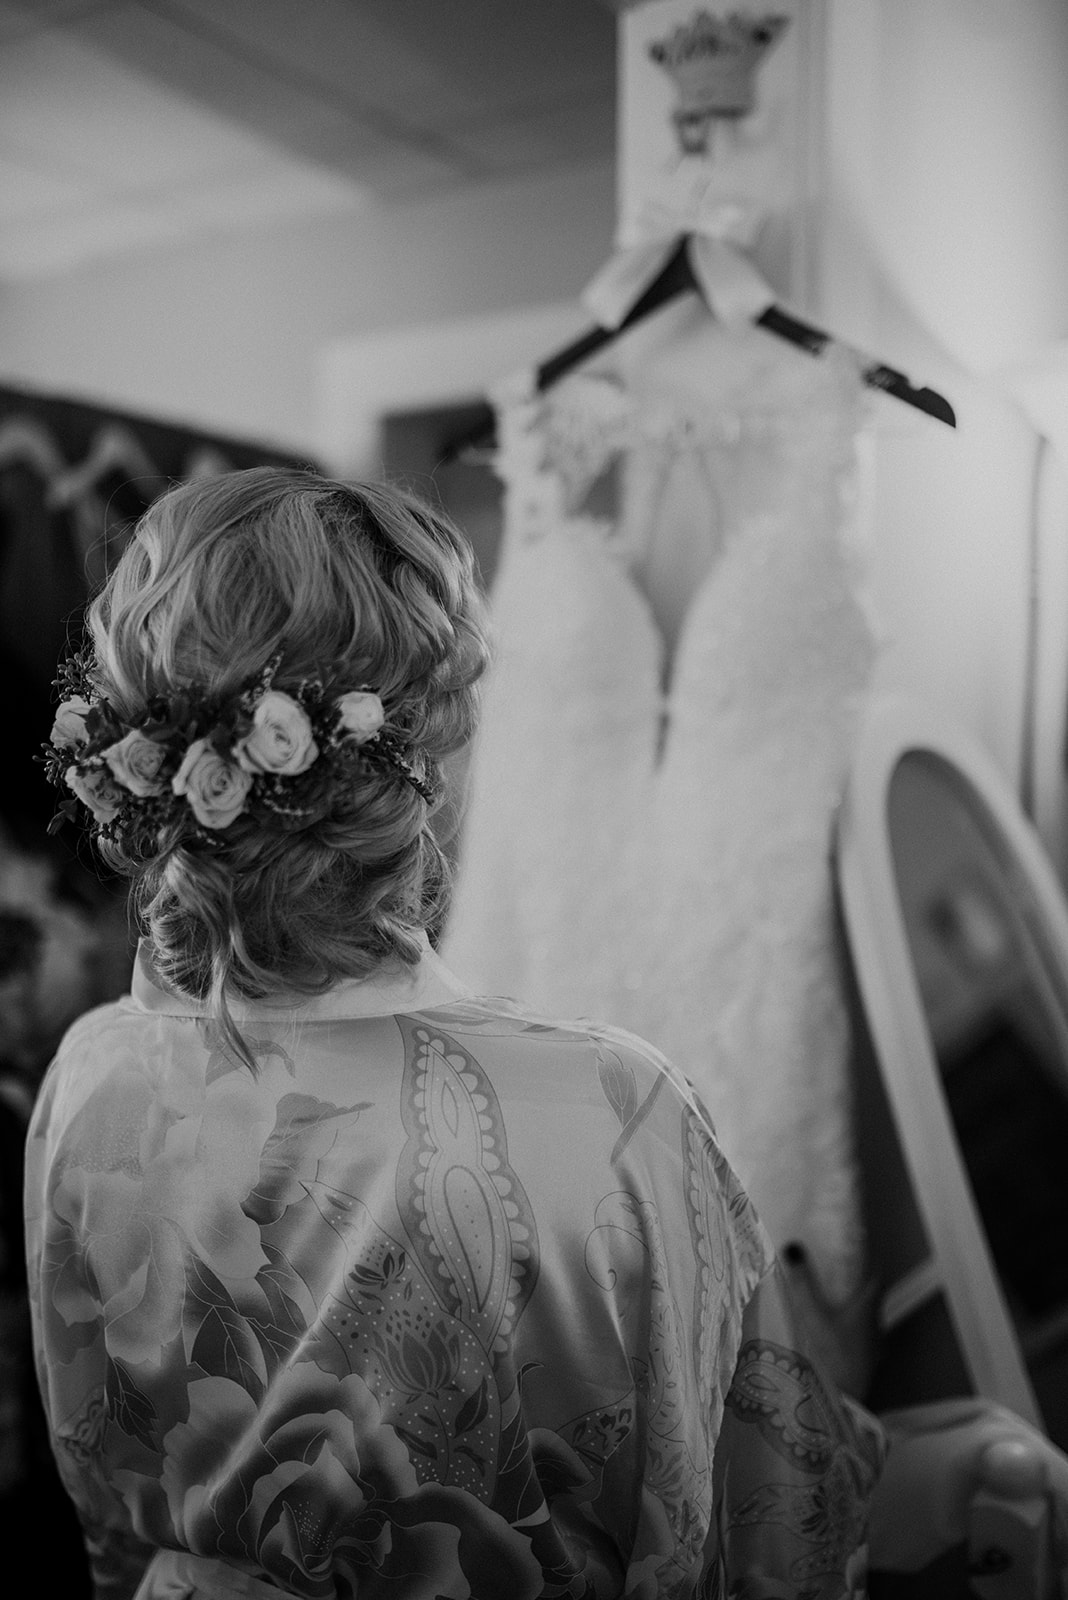 overthevineswisconsinwedding_0270.jpg